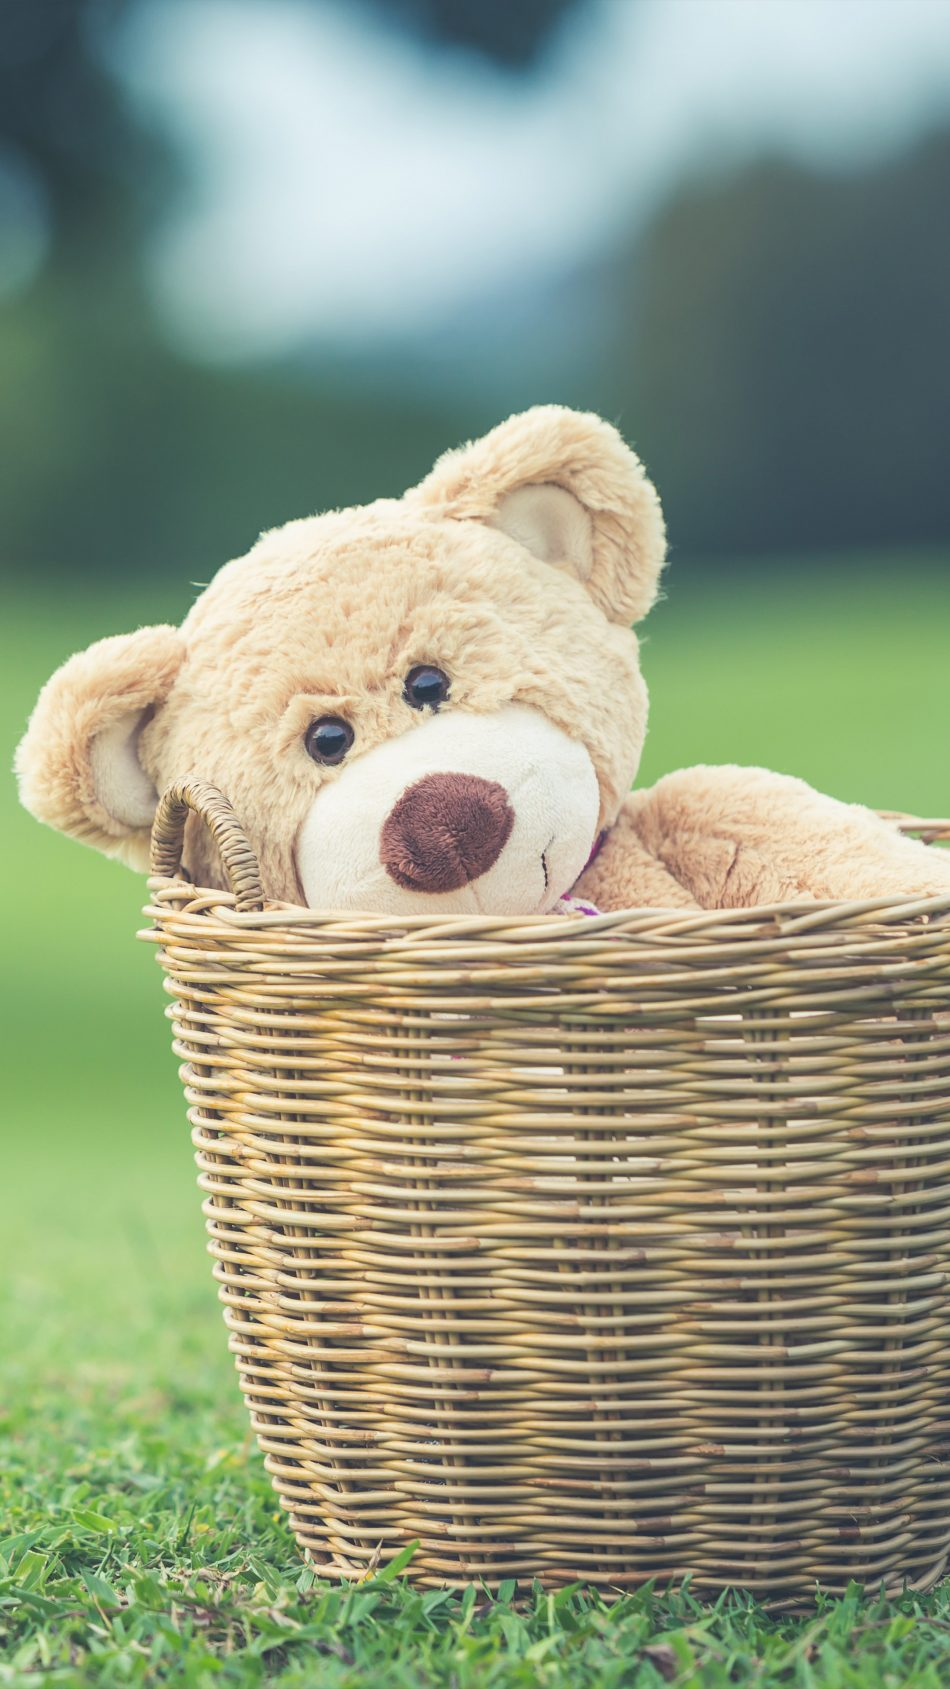 Teddy Bear Basket Playground 4K Ultra HD Mobile Wallpaper